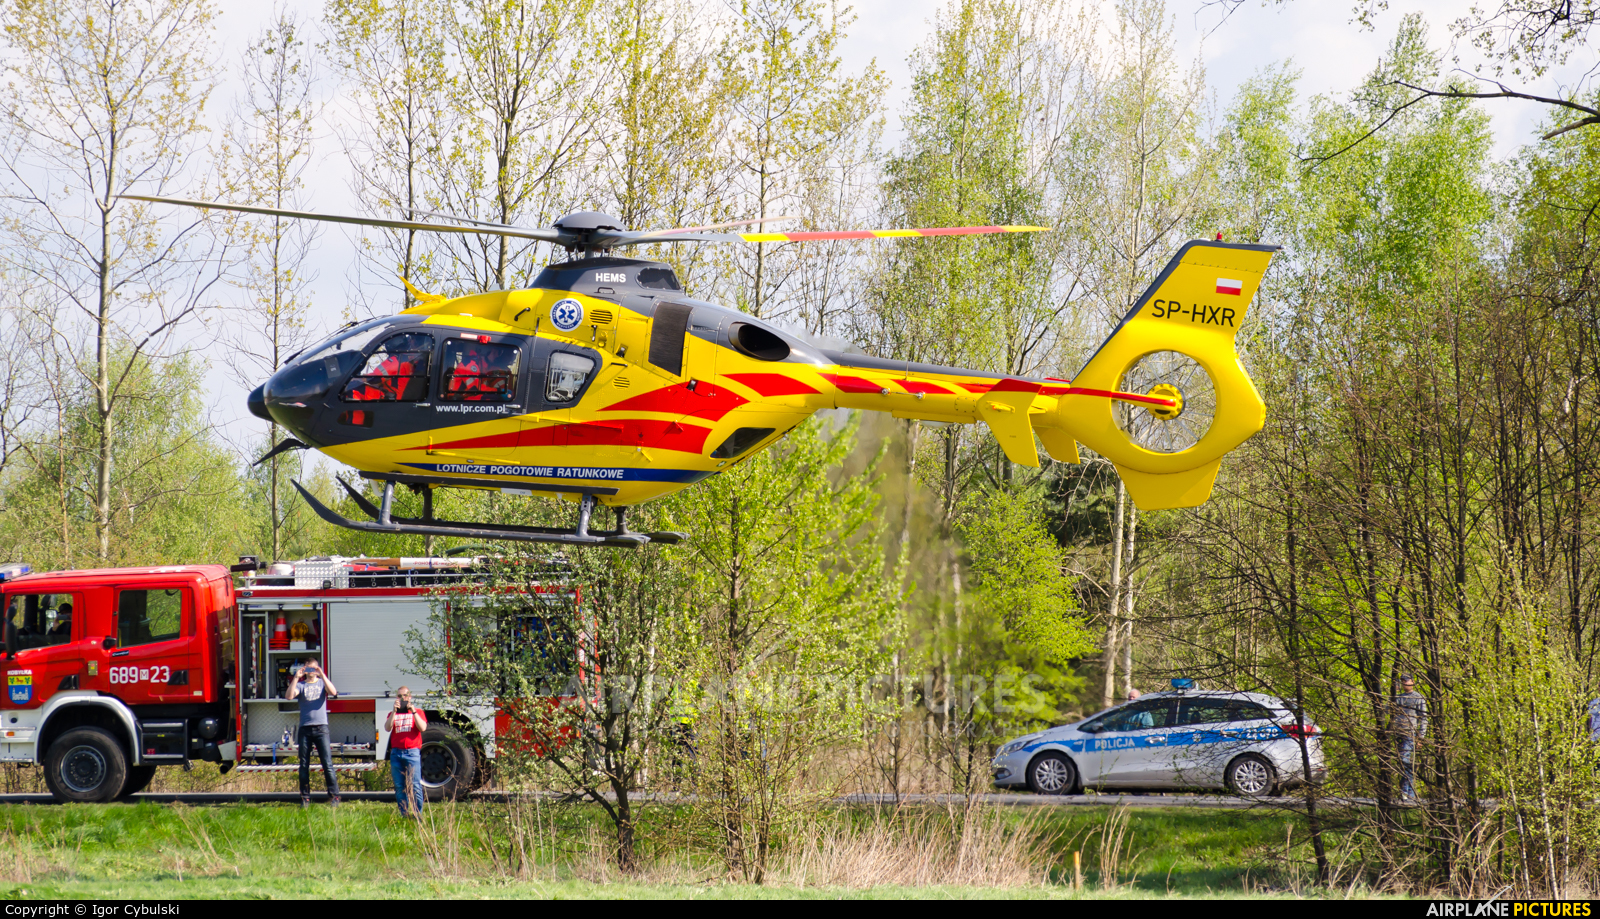 Polish Medical Air Rescue - Lotnicze Pogotowie Ratunkowe SP-HXR aircraft at Off Airport - Poland